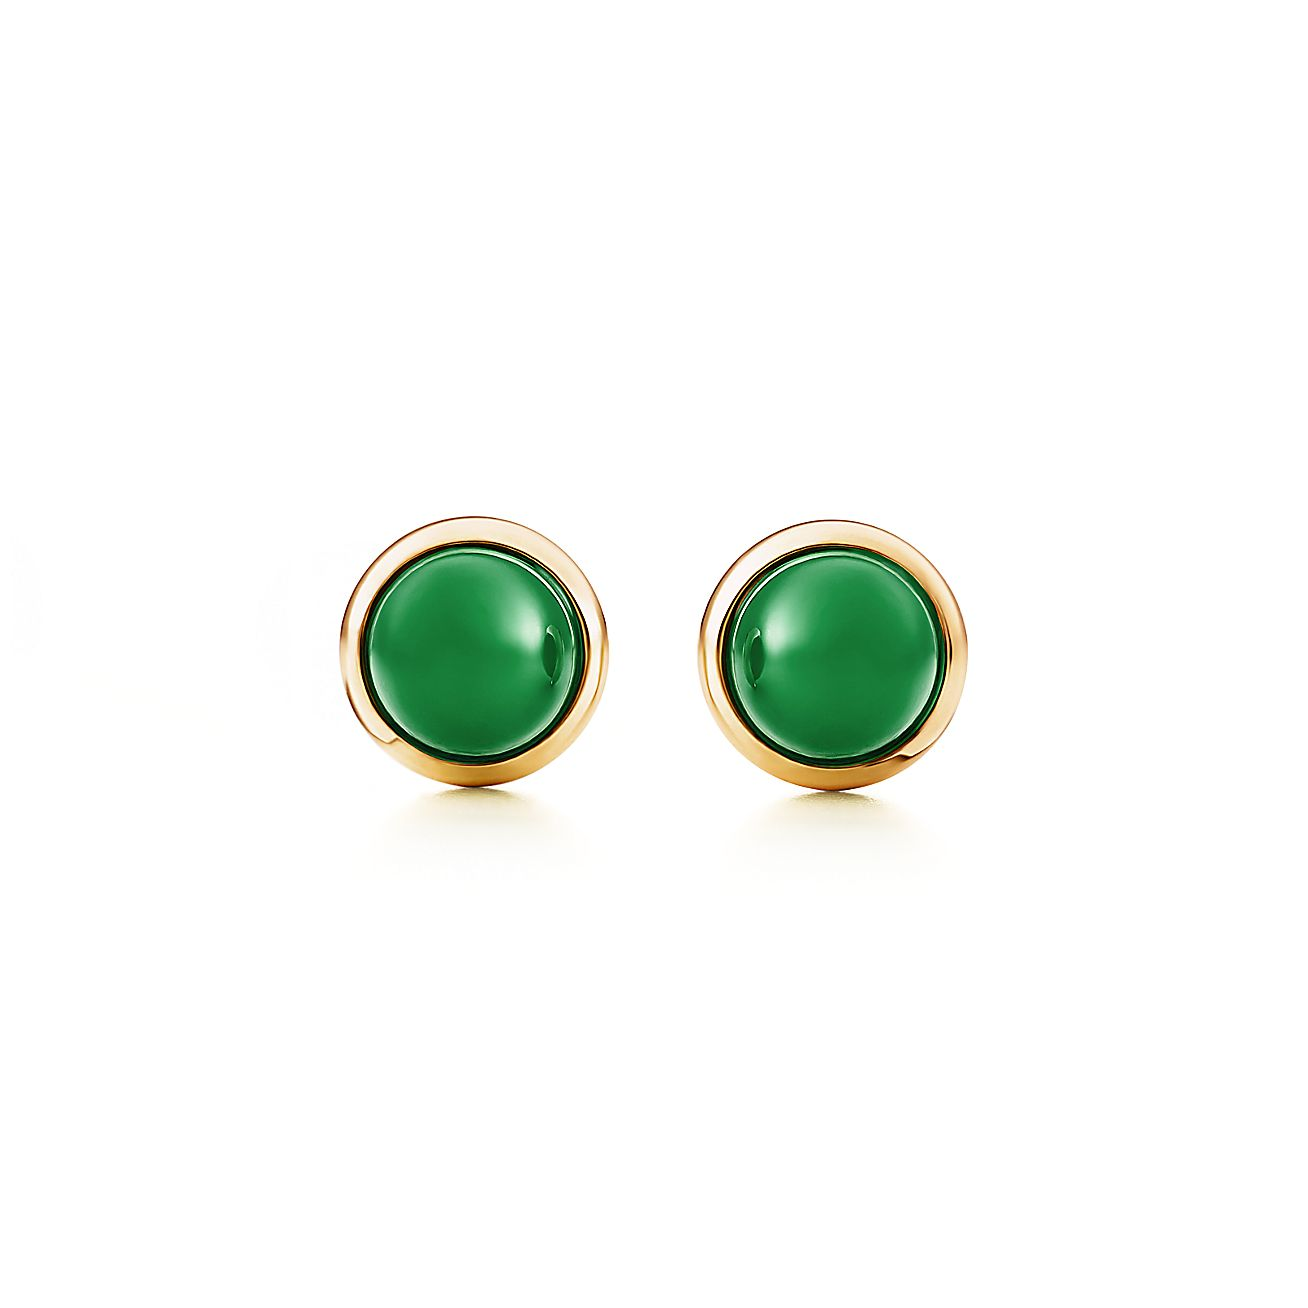 paveacute lyst gallery jewelry jade gold earrings pave white drop teardrop green product pav sapphire mija